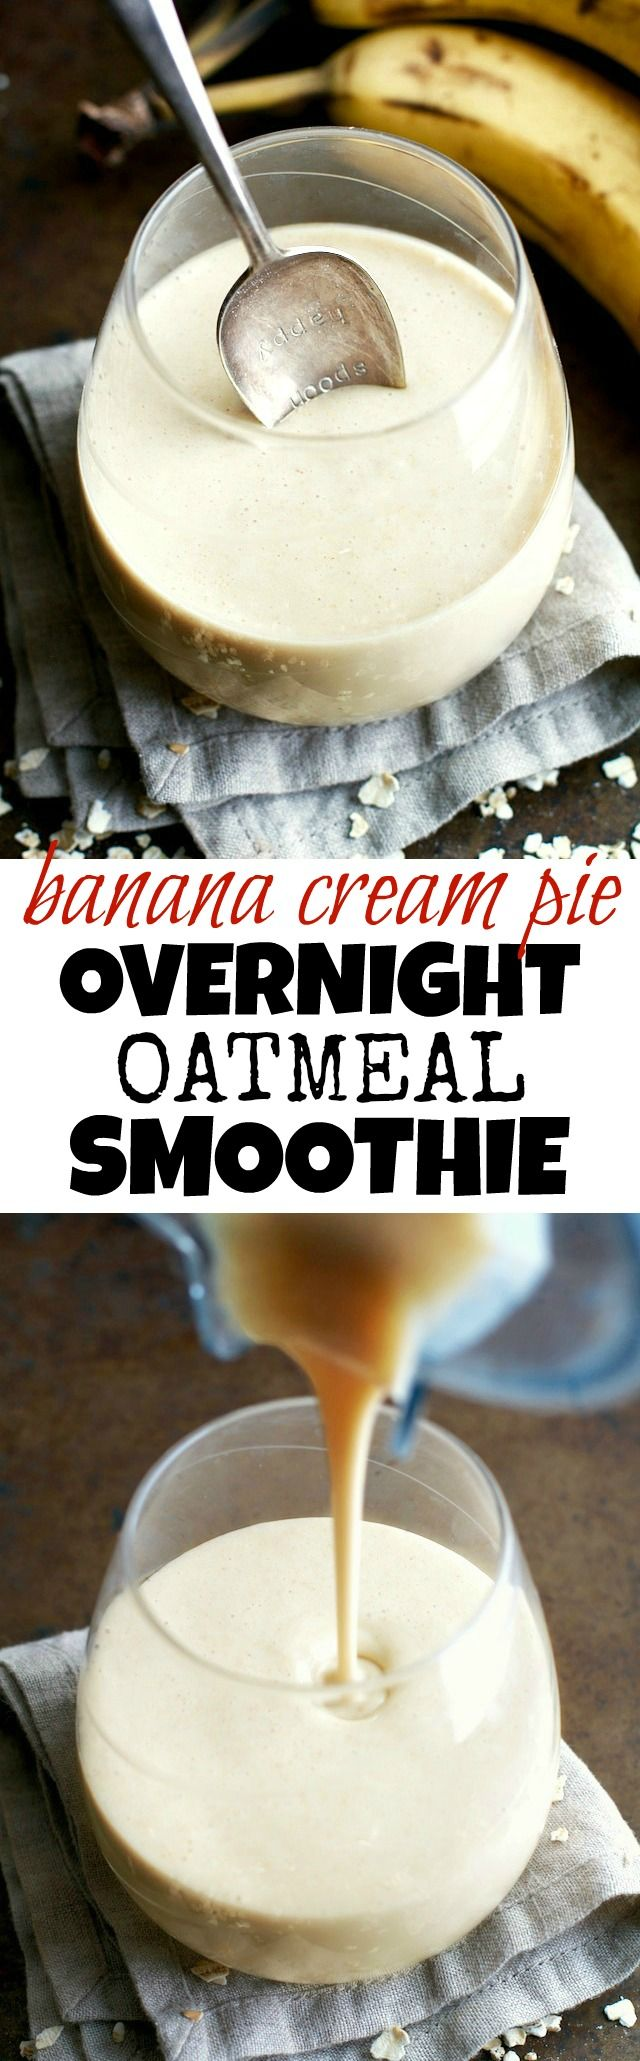 You've never had oatmeal like this before! This thick and creamy Banana Cream Pie Overnight Oatmeal Smoothie combines that stick-to-your-ribs feeling of a bowl of oats with the silky smooth texture of a smoothie! |runningwithspoons.com #vegan #smoothie #h